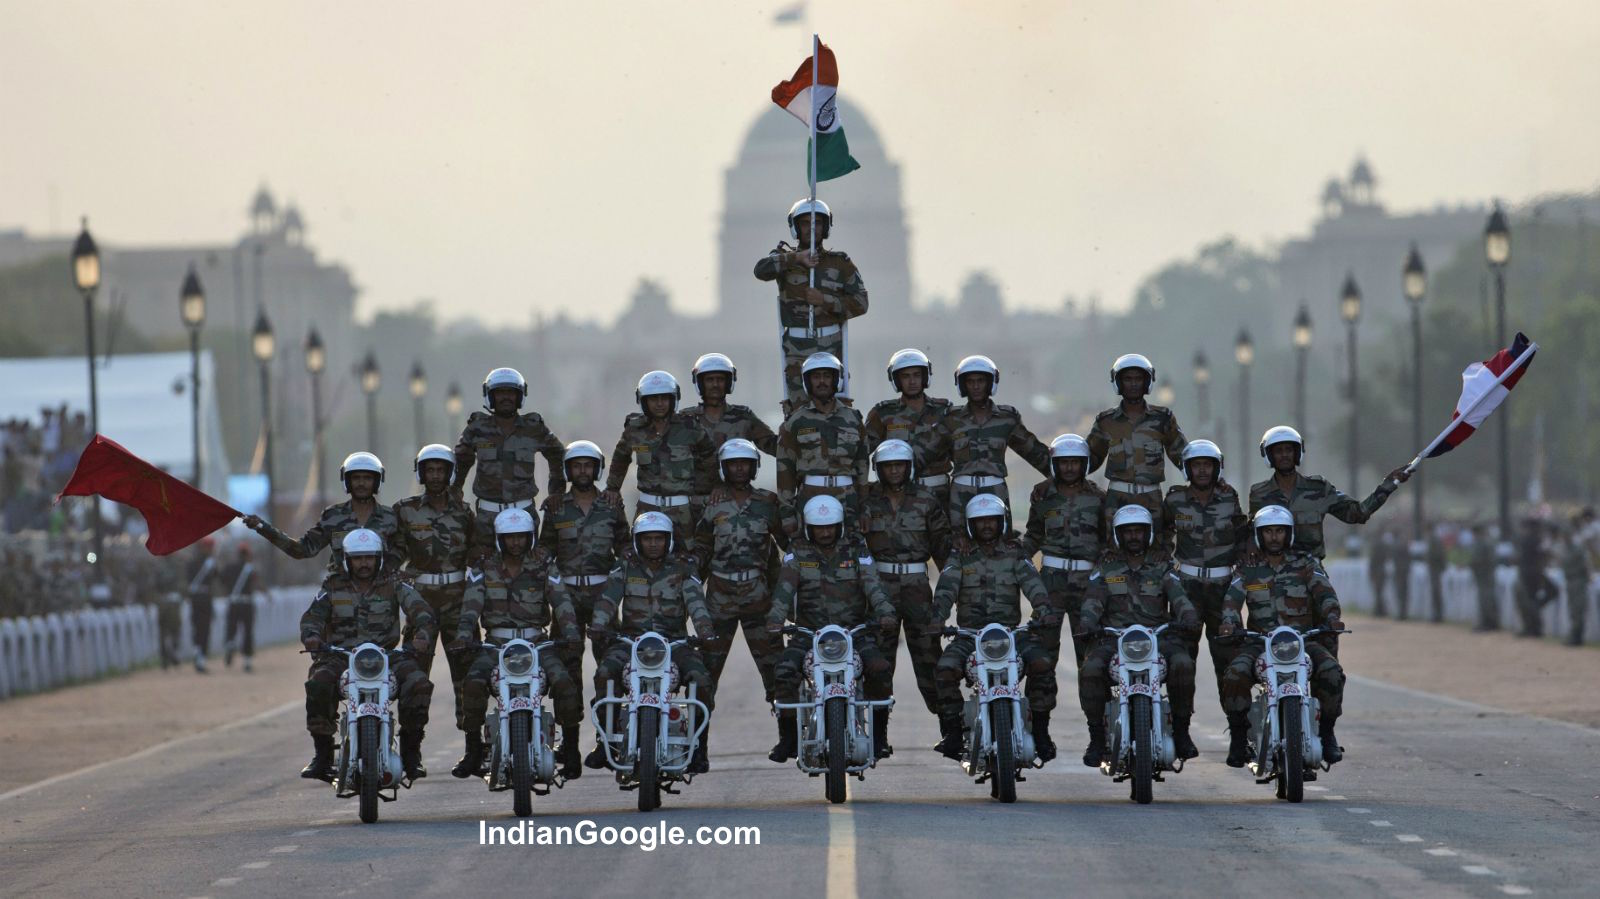 Indian Army Love Images Hd: Did You See These Shocking Indian Army Images & Wallpaper